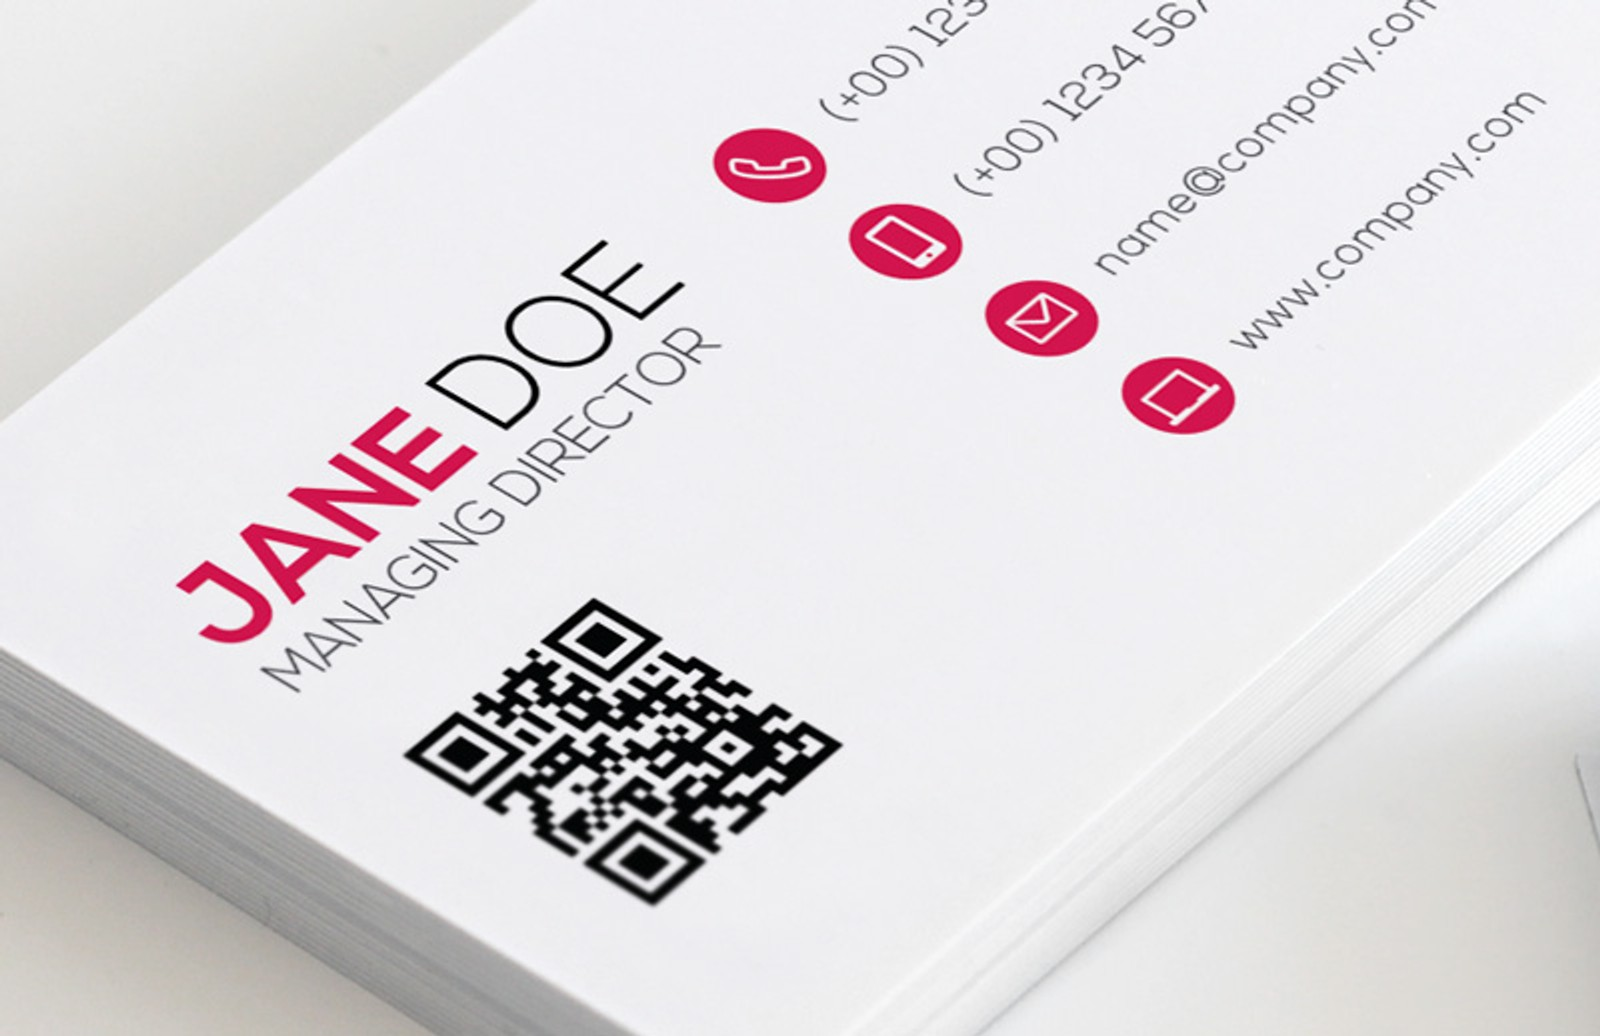 Qr code business card template vol 2 medialoot qr code business card vol 2 preview 1 cheaphphosting